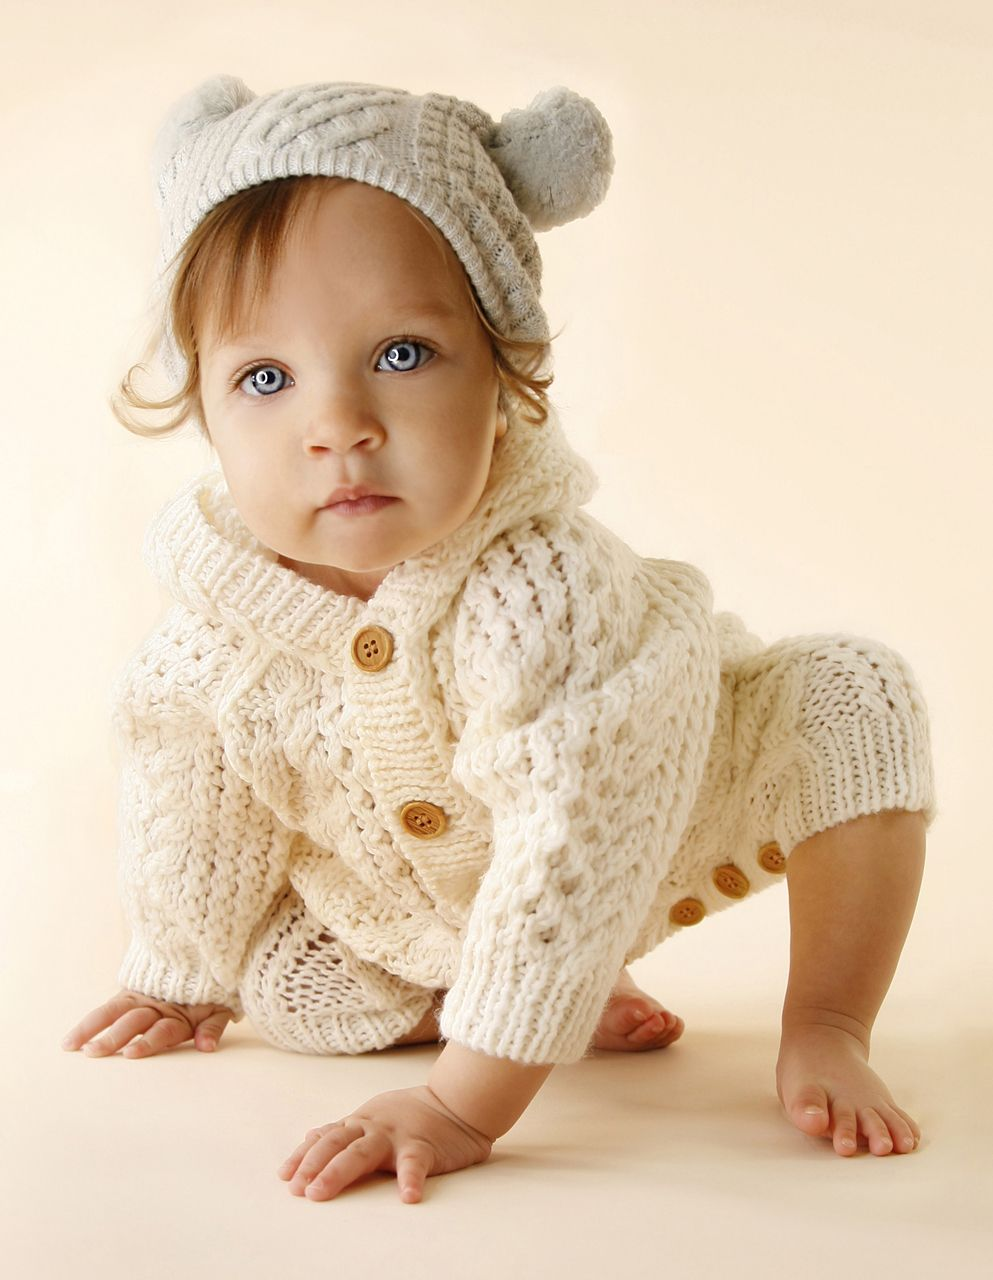 And clothes to create the most beautiful baby portraits le studio nyc is also a certified member of the american association of newborn photography